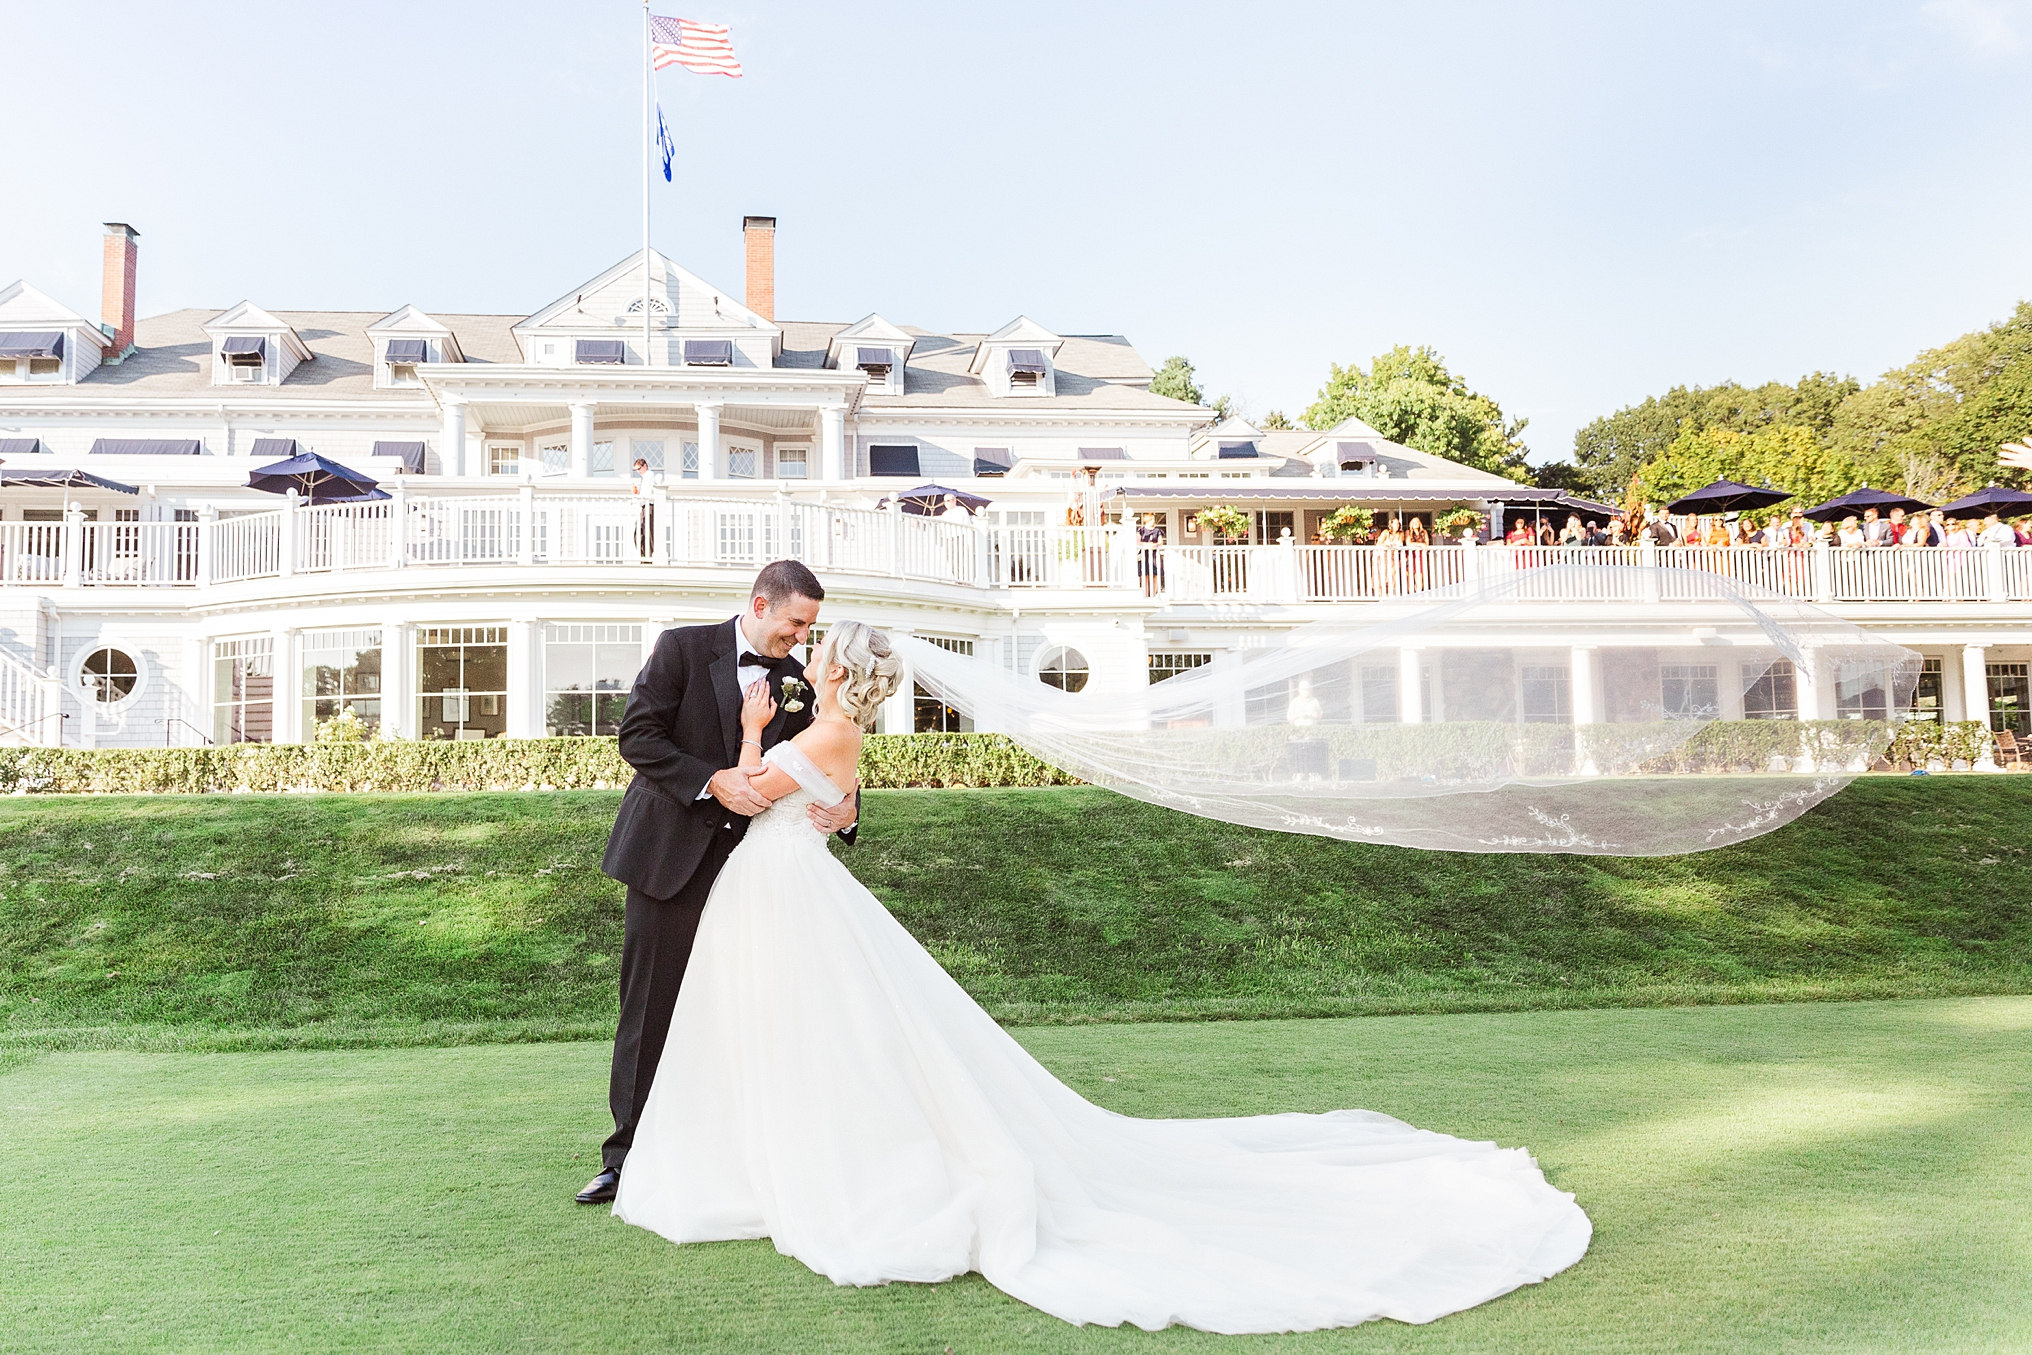 Newton MA wedding and family photography and videography team